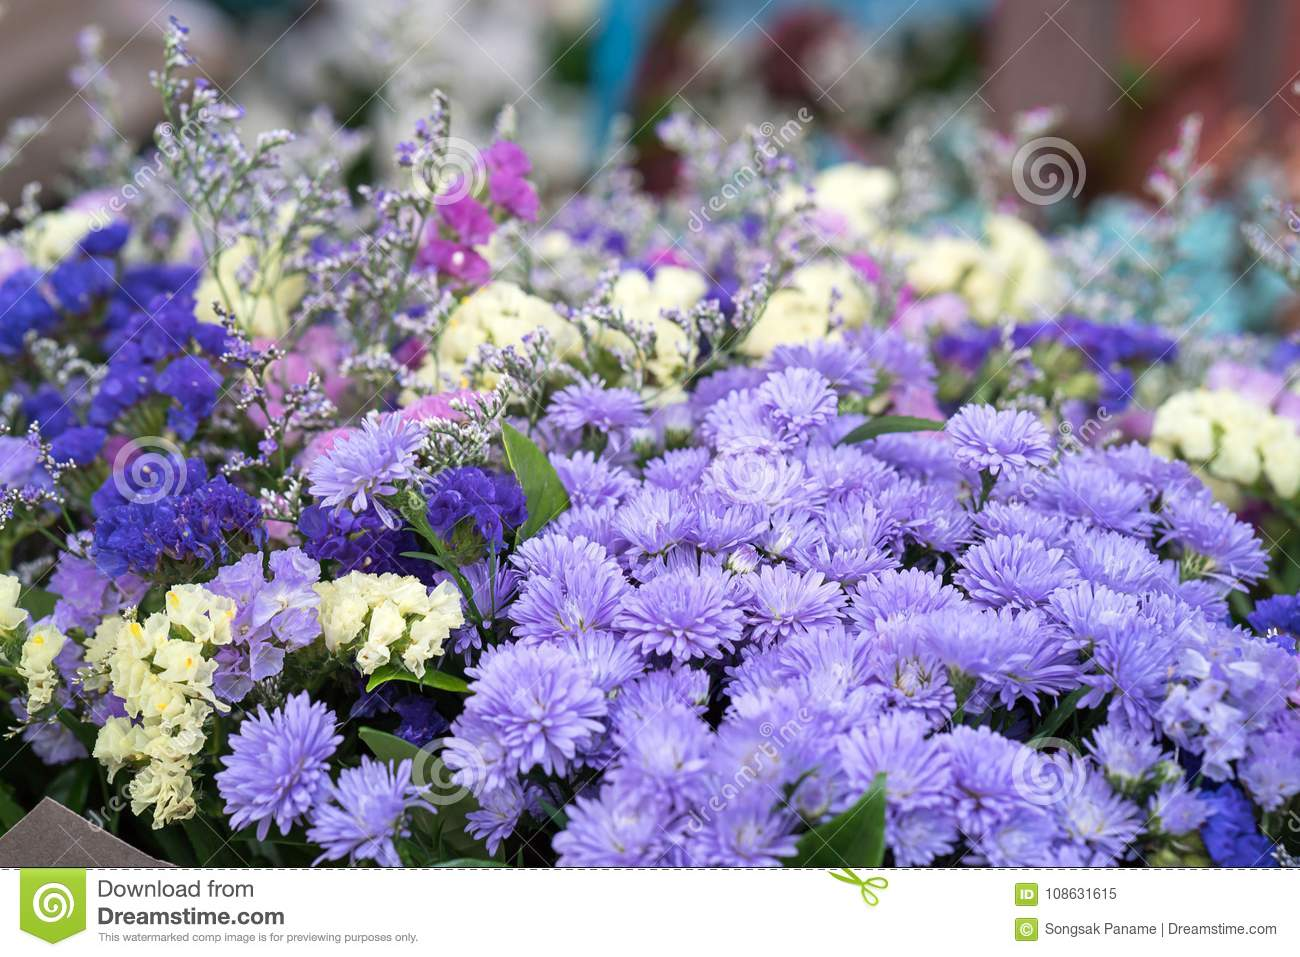 Magenta asters flower bouquet stock image image of magenta head download magenta asters flower bouquet stock image image of magenta head 108631615 izmirmasajfo